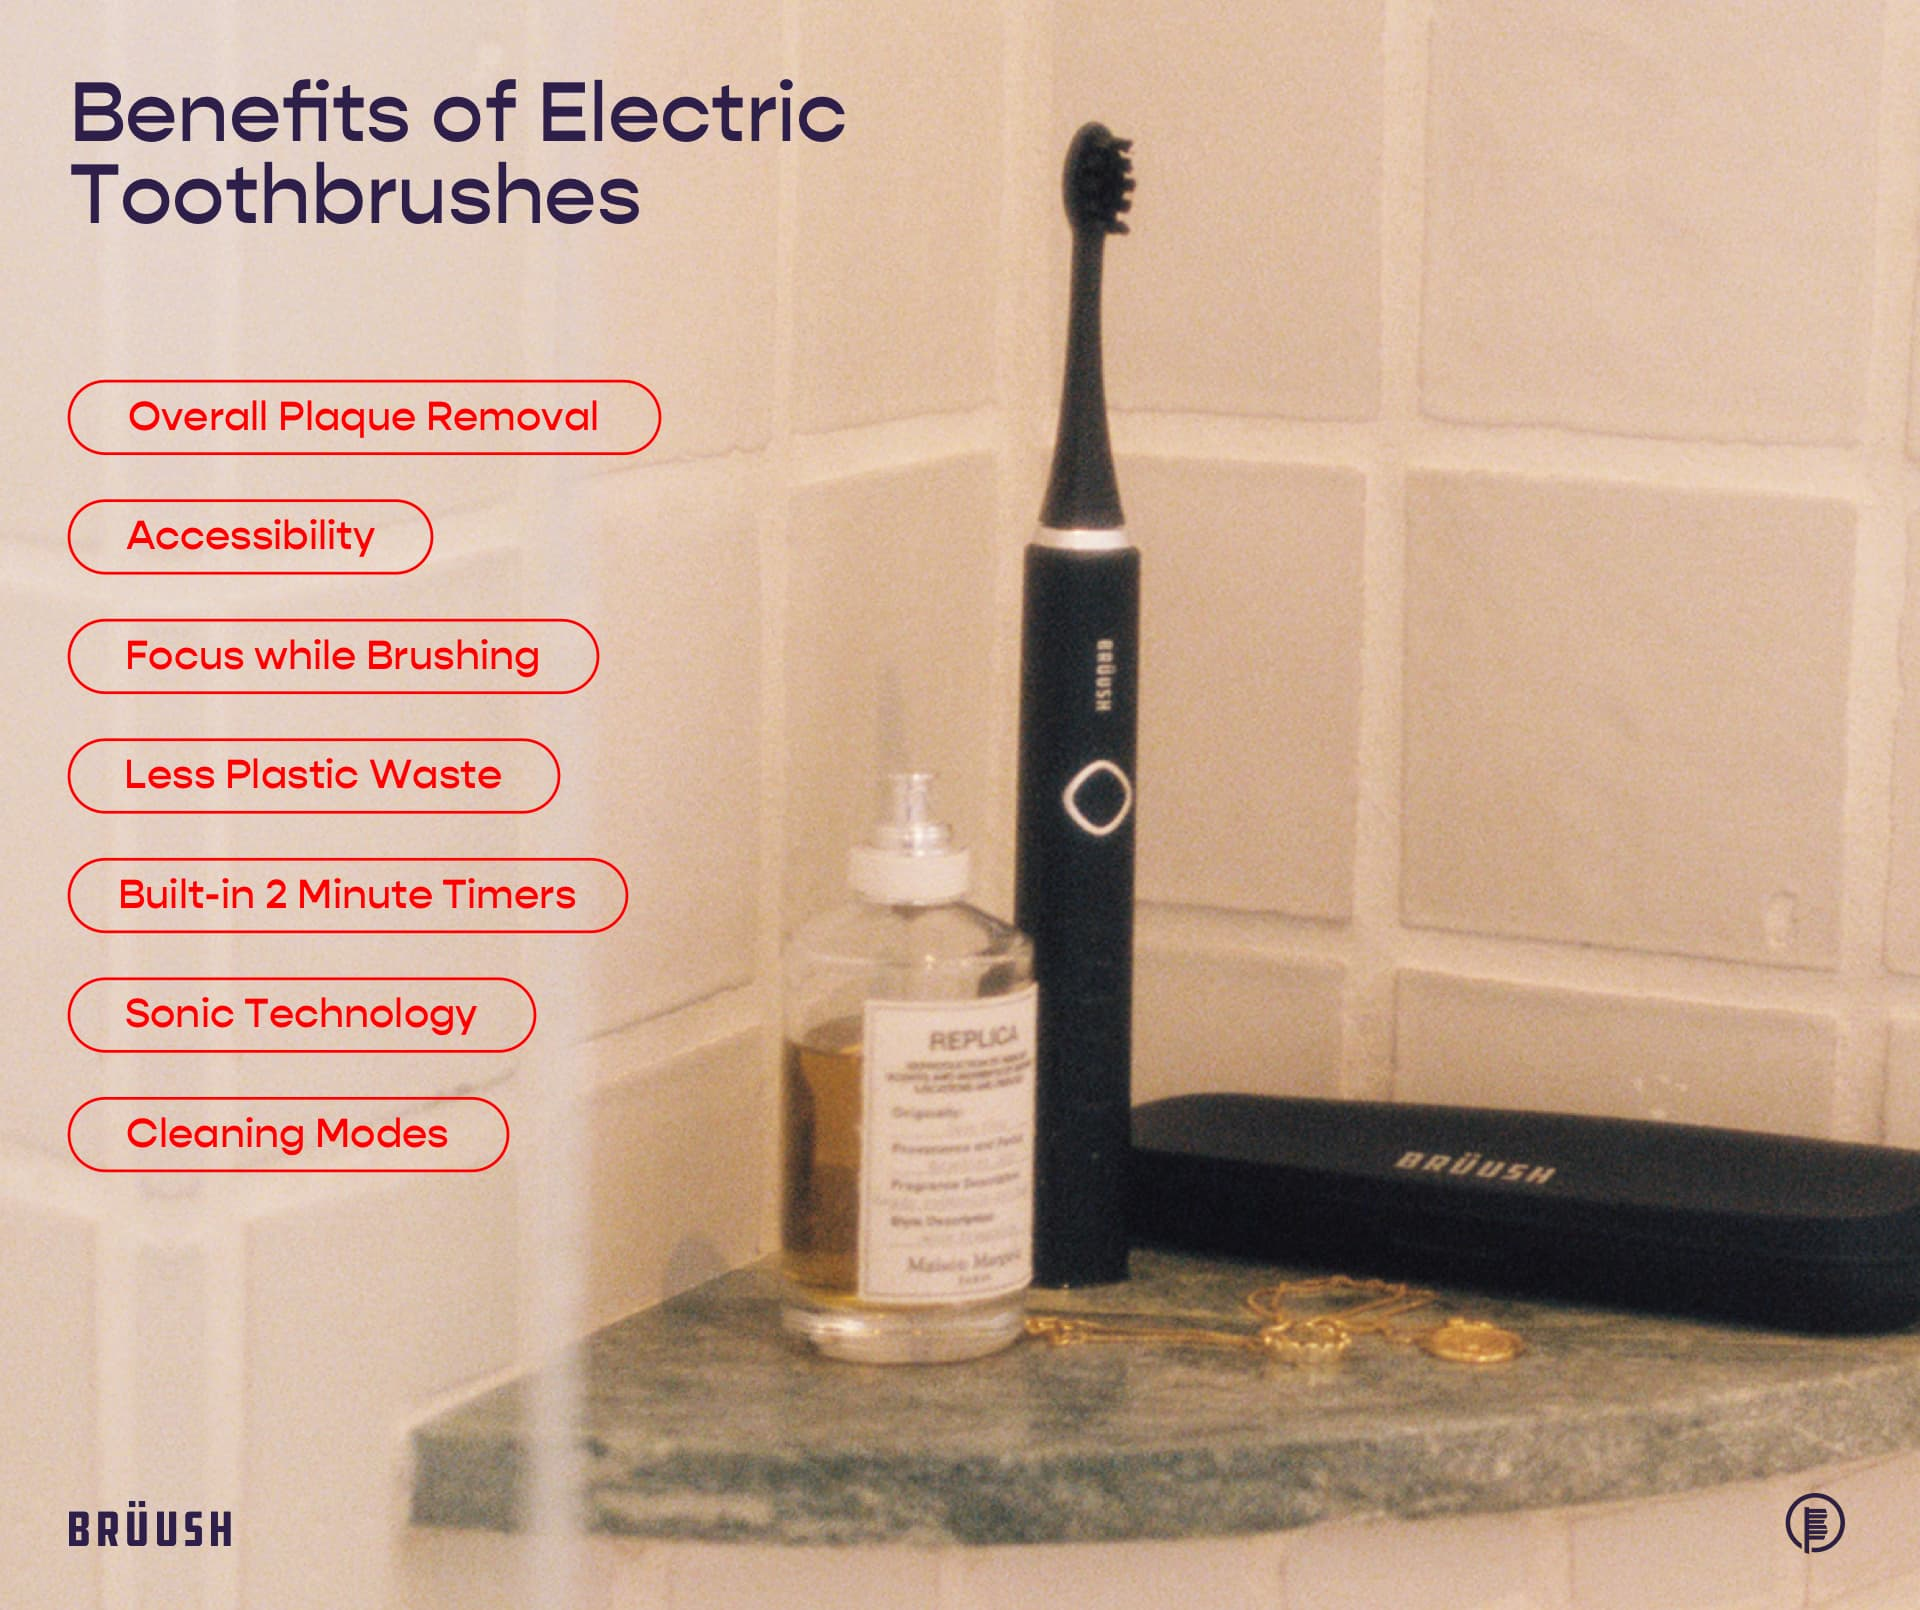 the benefits out electric toothbrushes listed